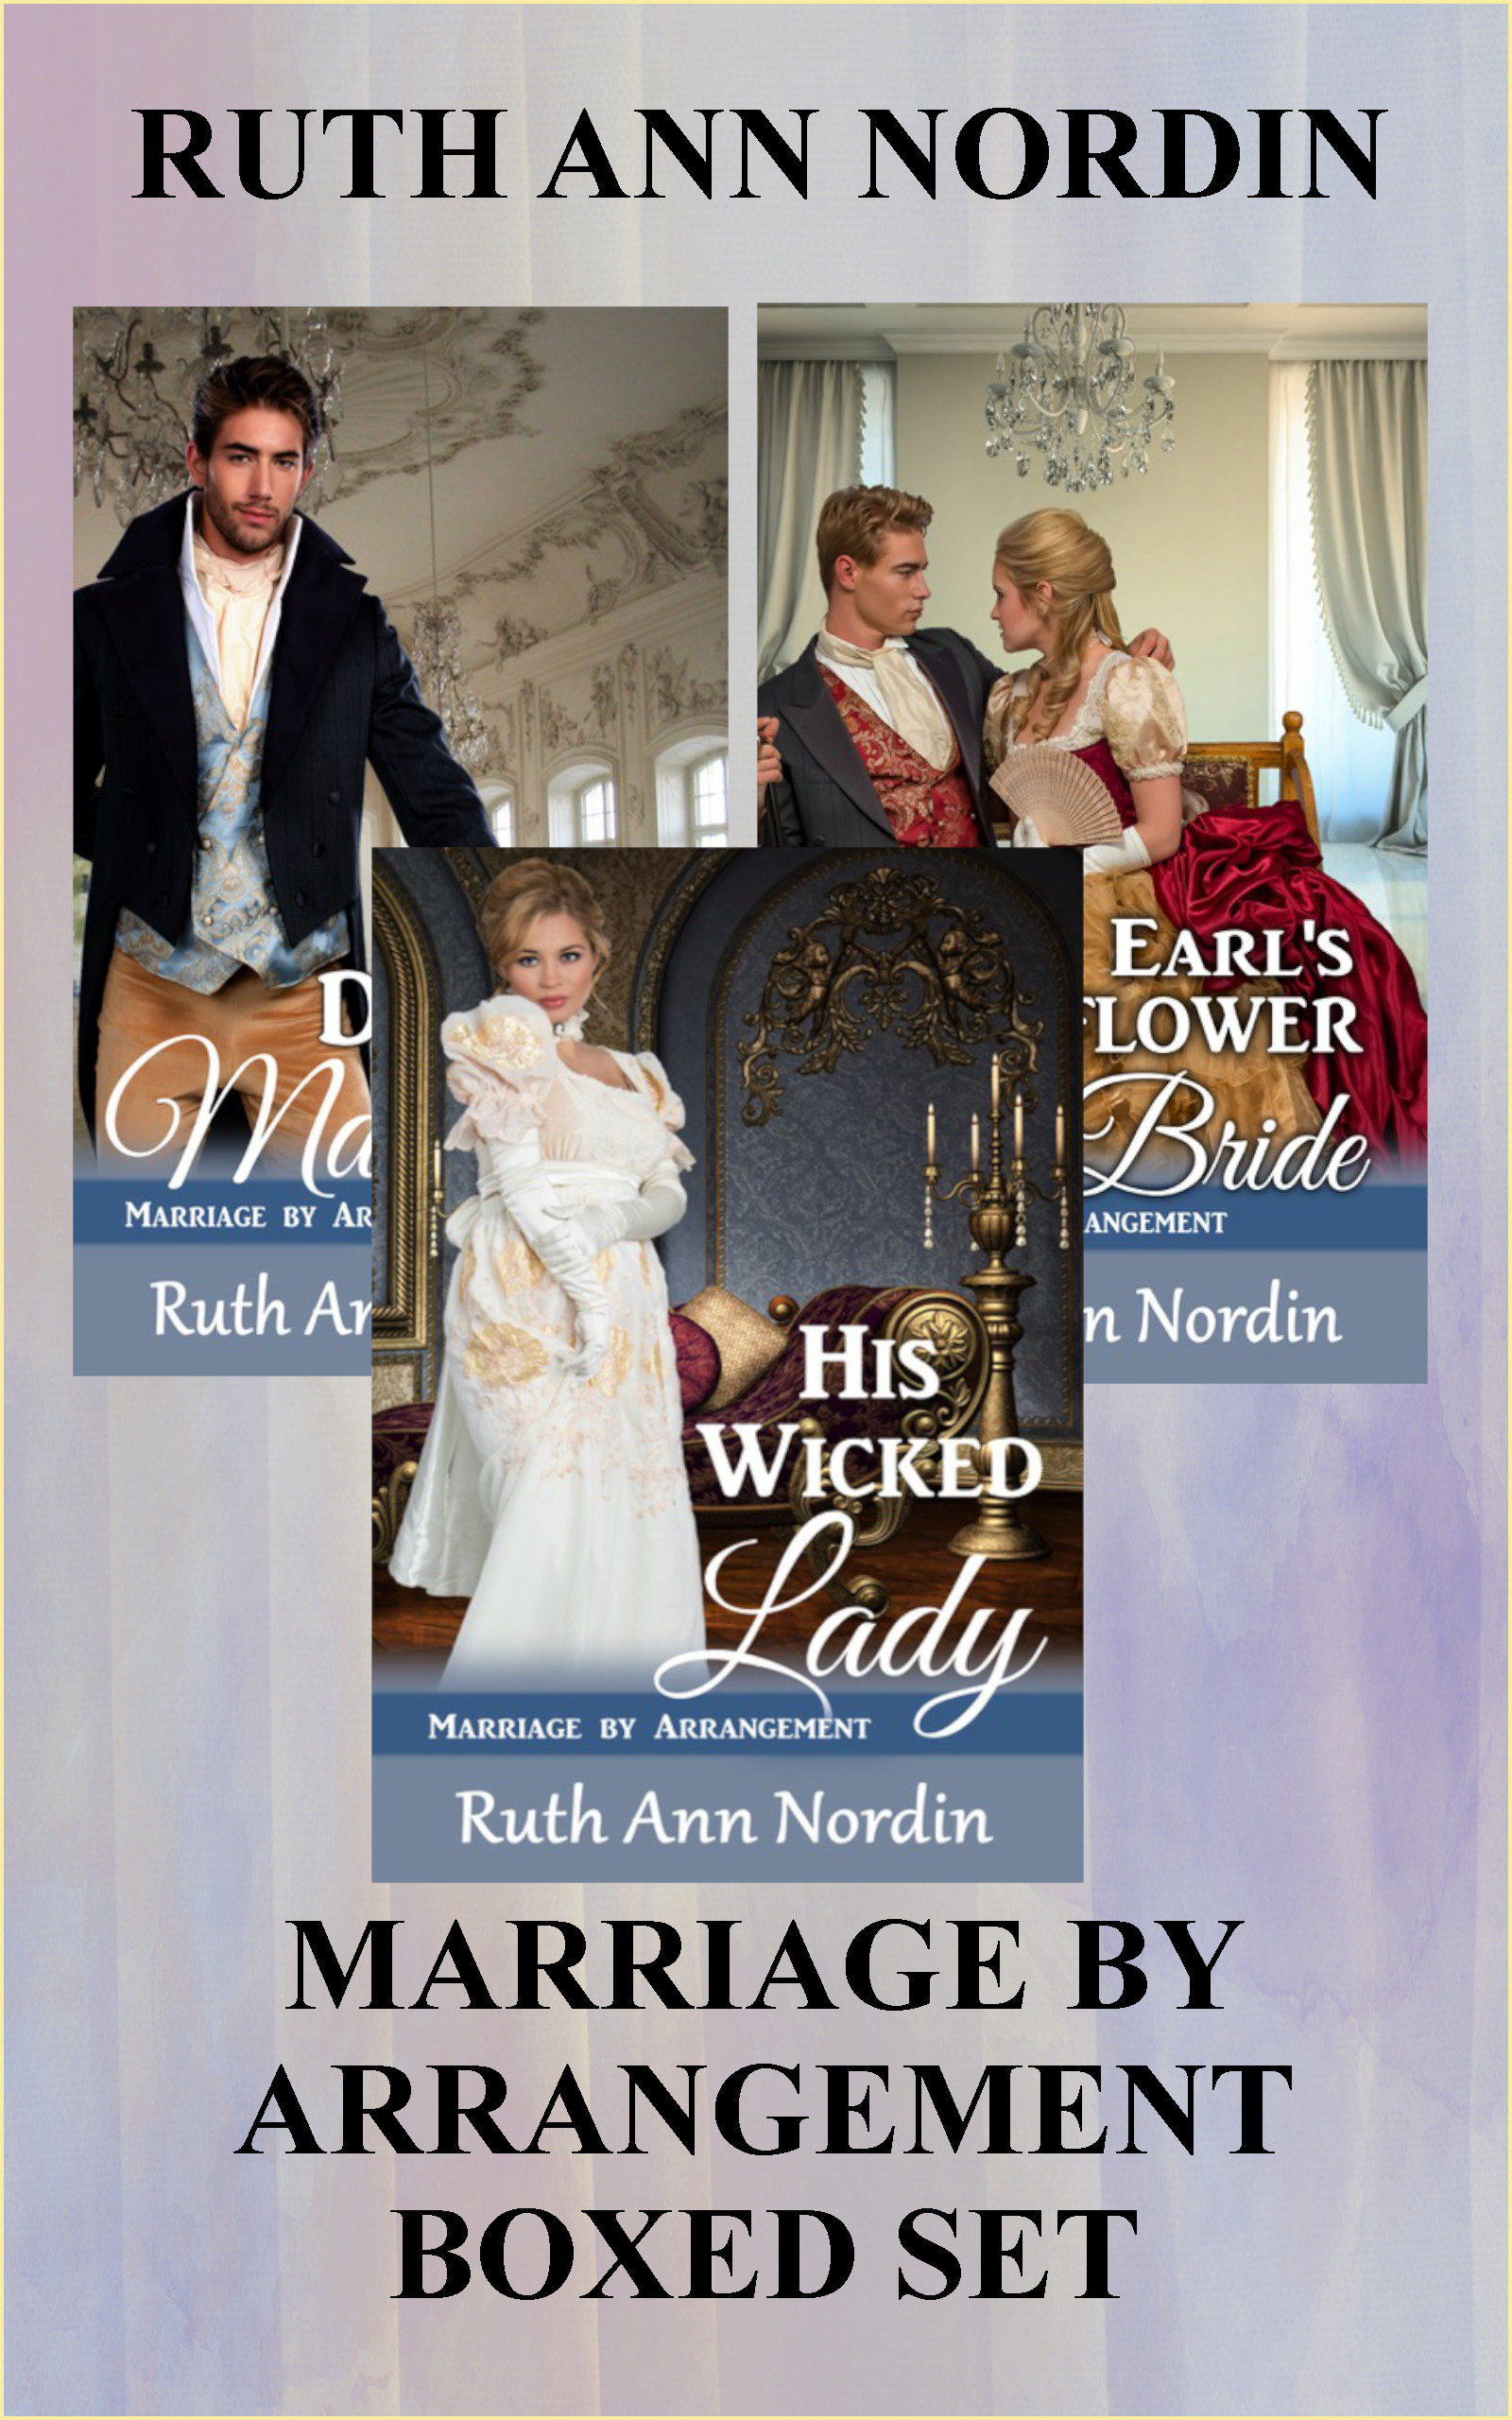 Marriage by Arrangement Boxed Set flat ebook cover